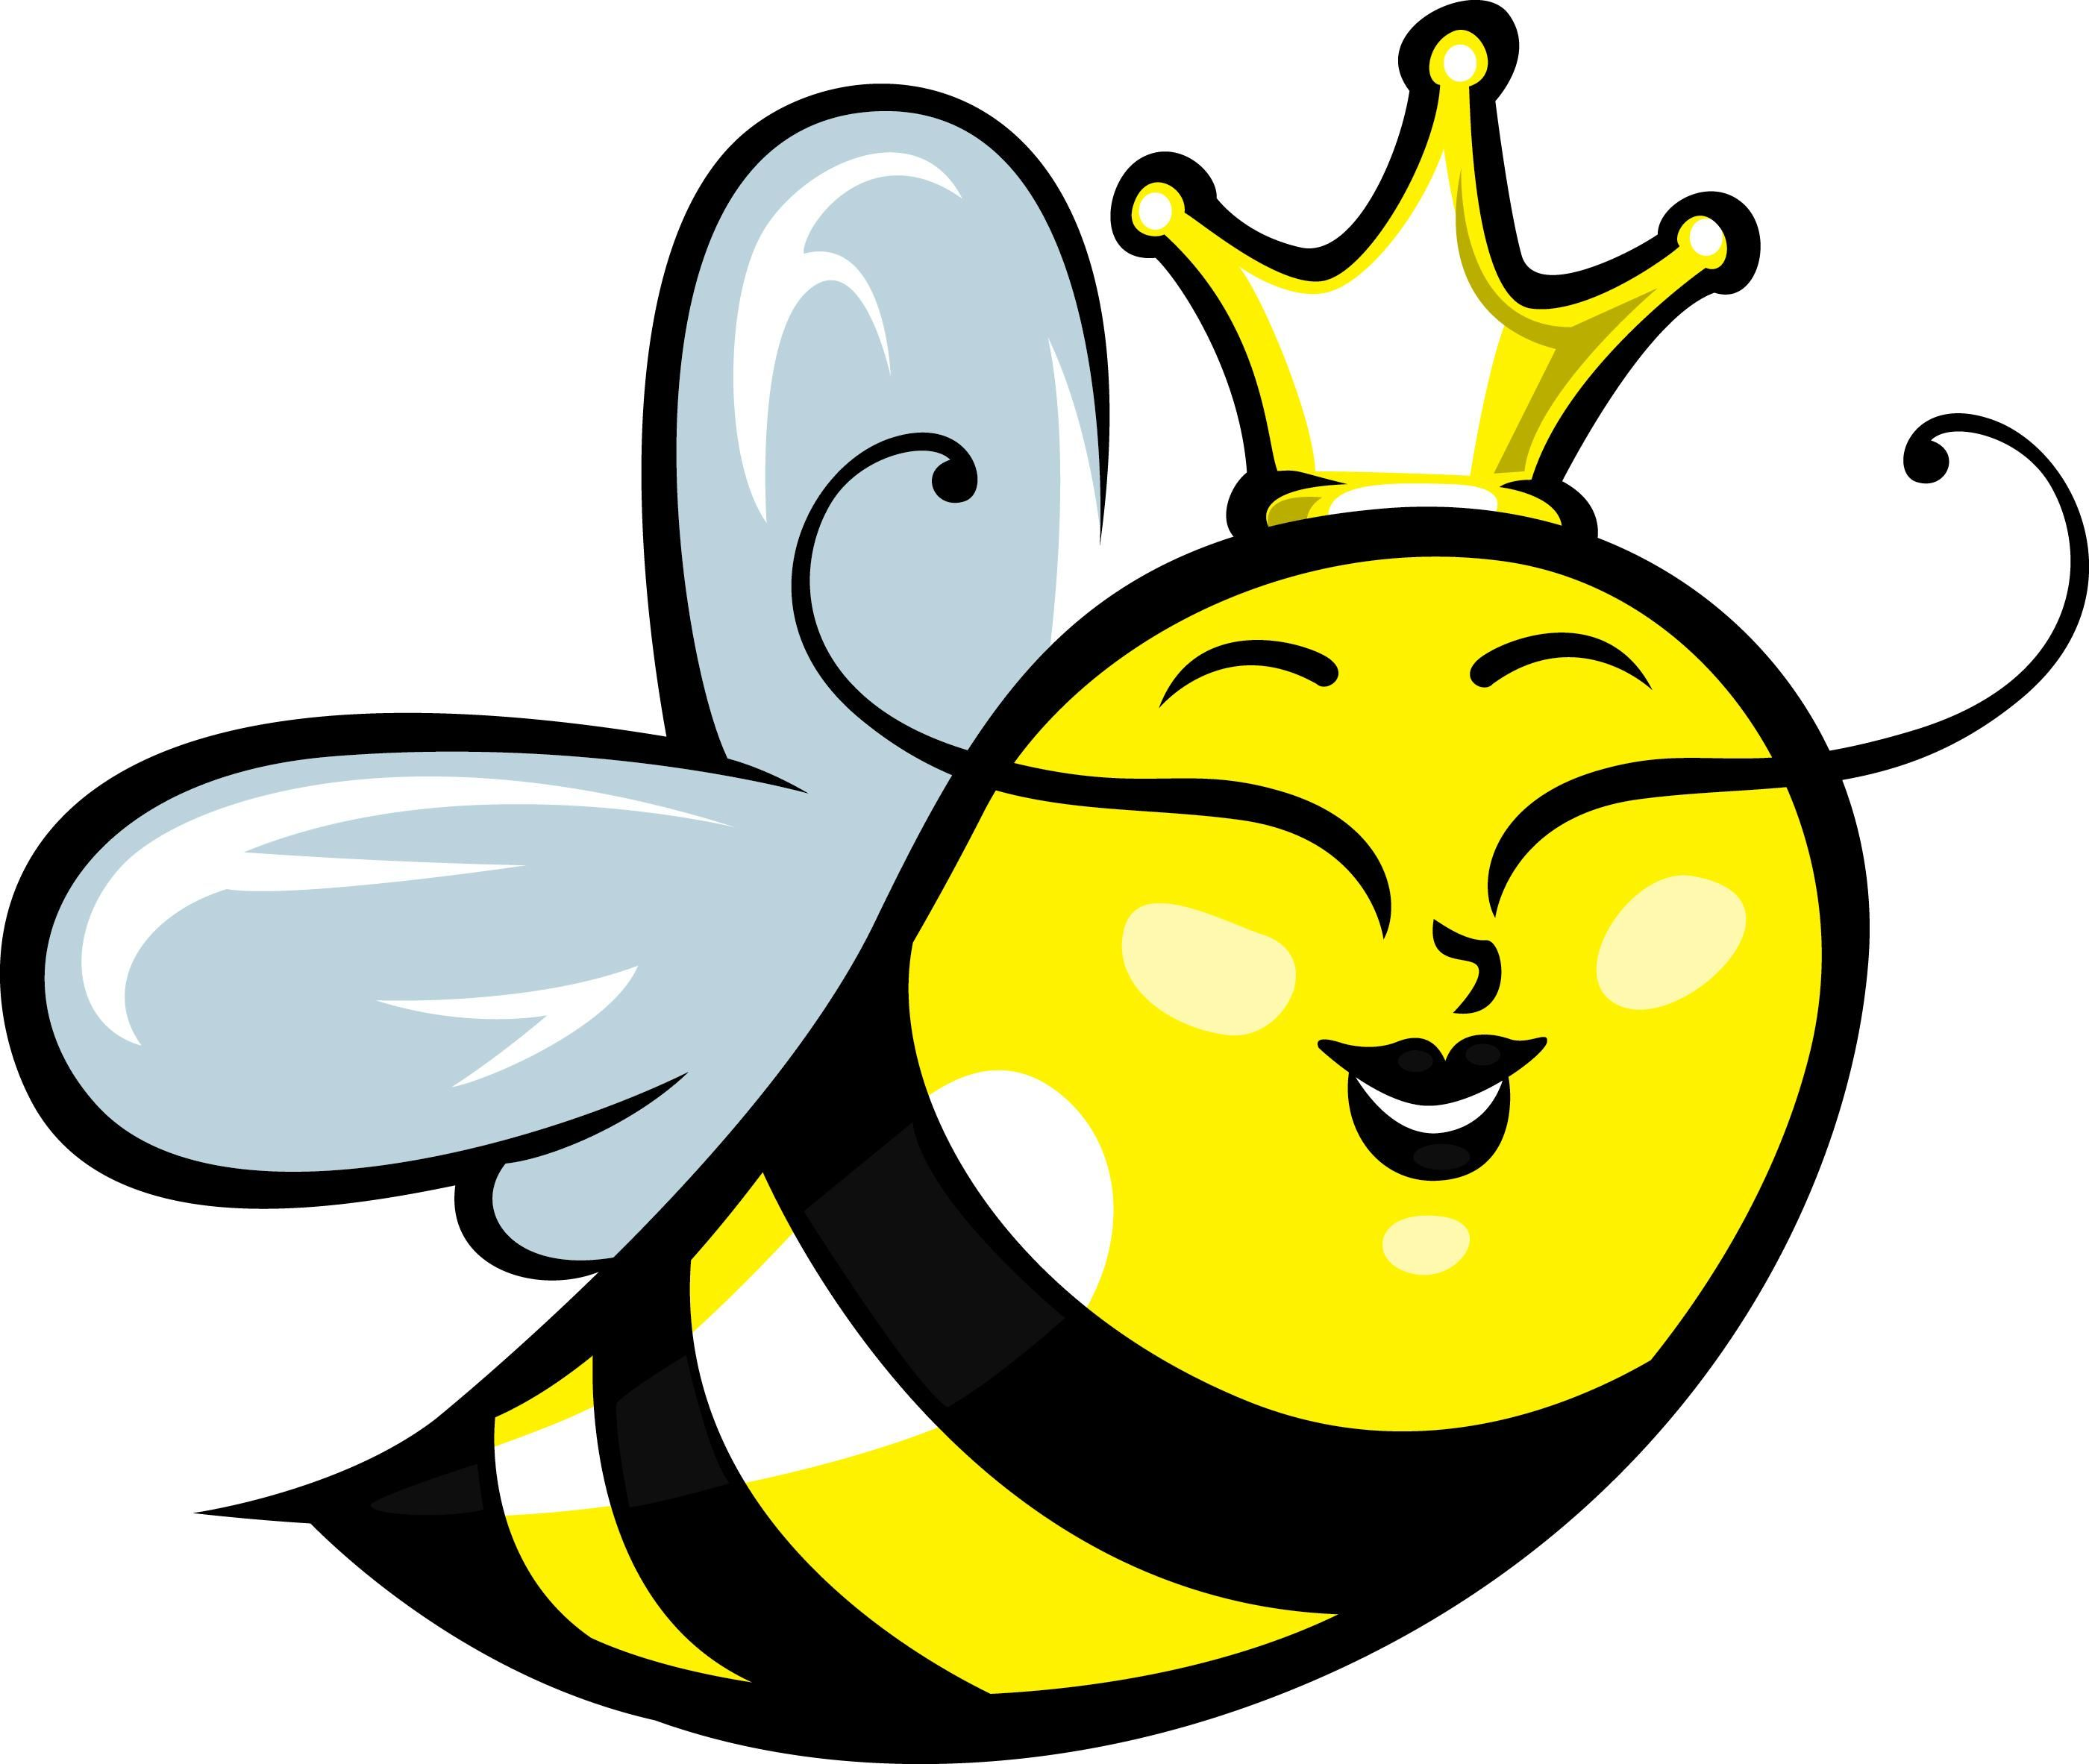 bee clipart bumble bee free all rights the cliparts art practice rh pinterest com queen bee clip art free queen bee clip art images